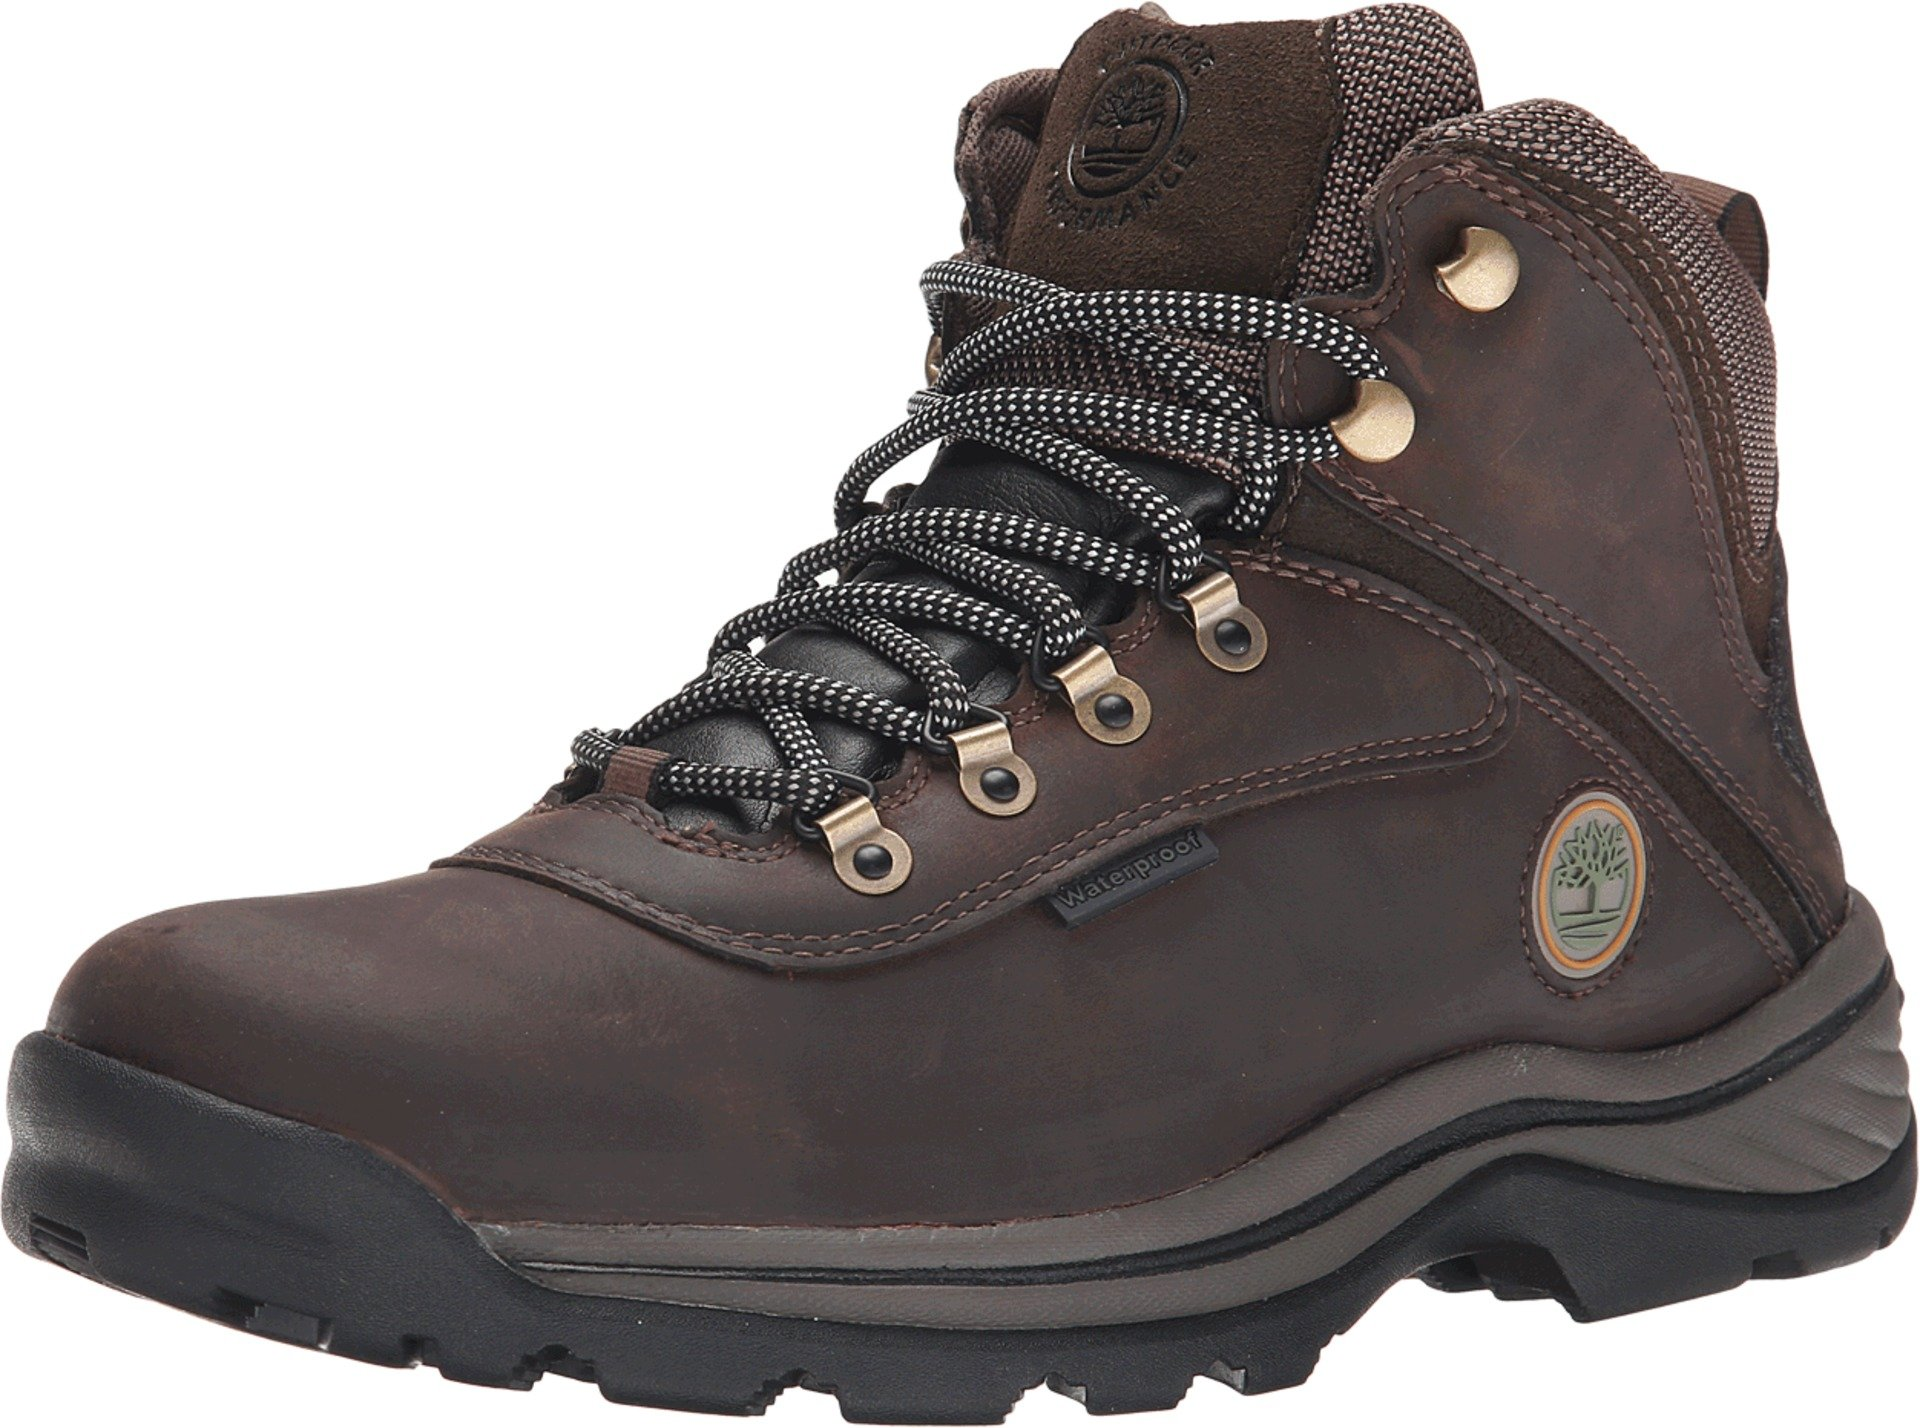 Timberland Men's White Ledge Mid Waterproof Boot,Dark Brown,9 W US